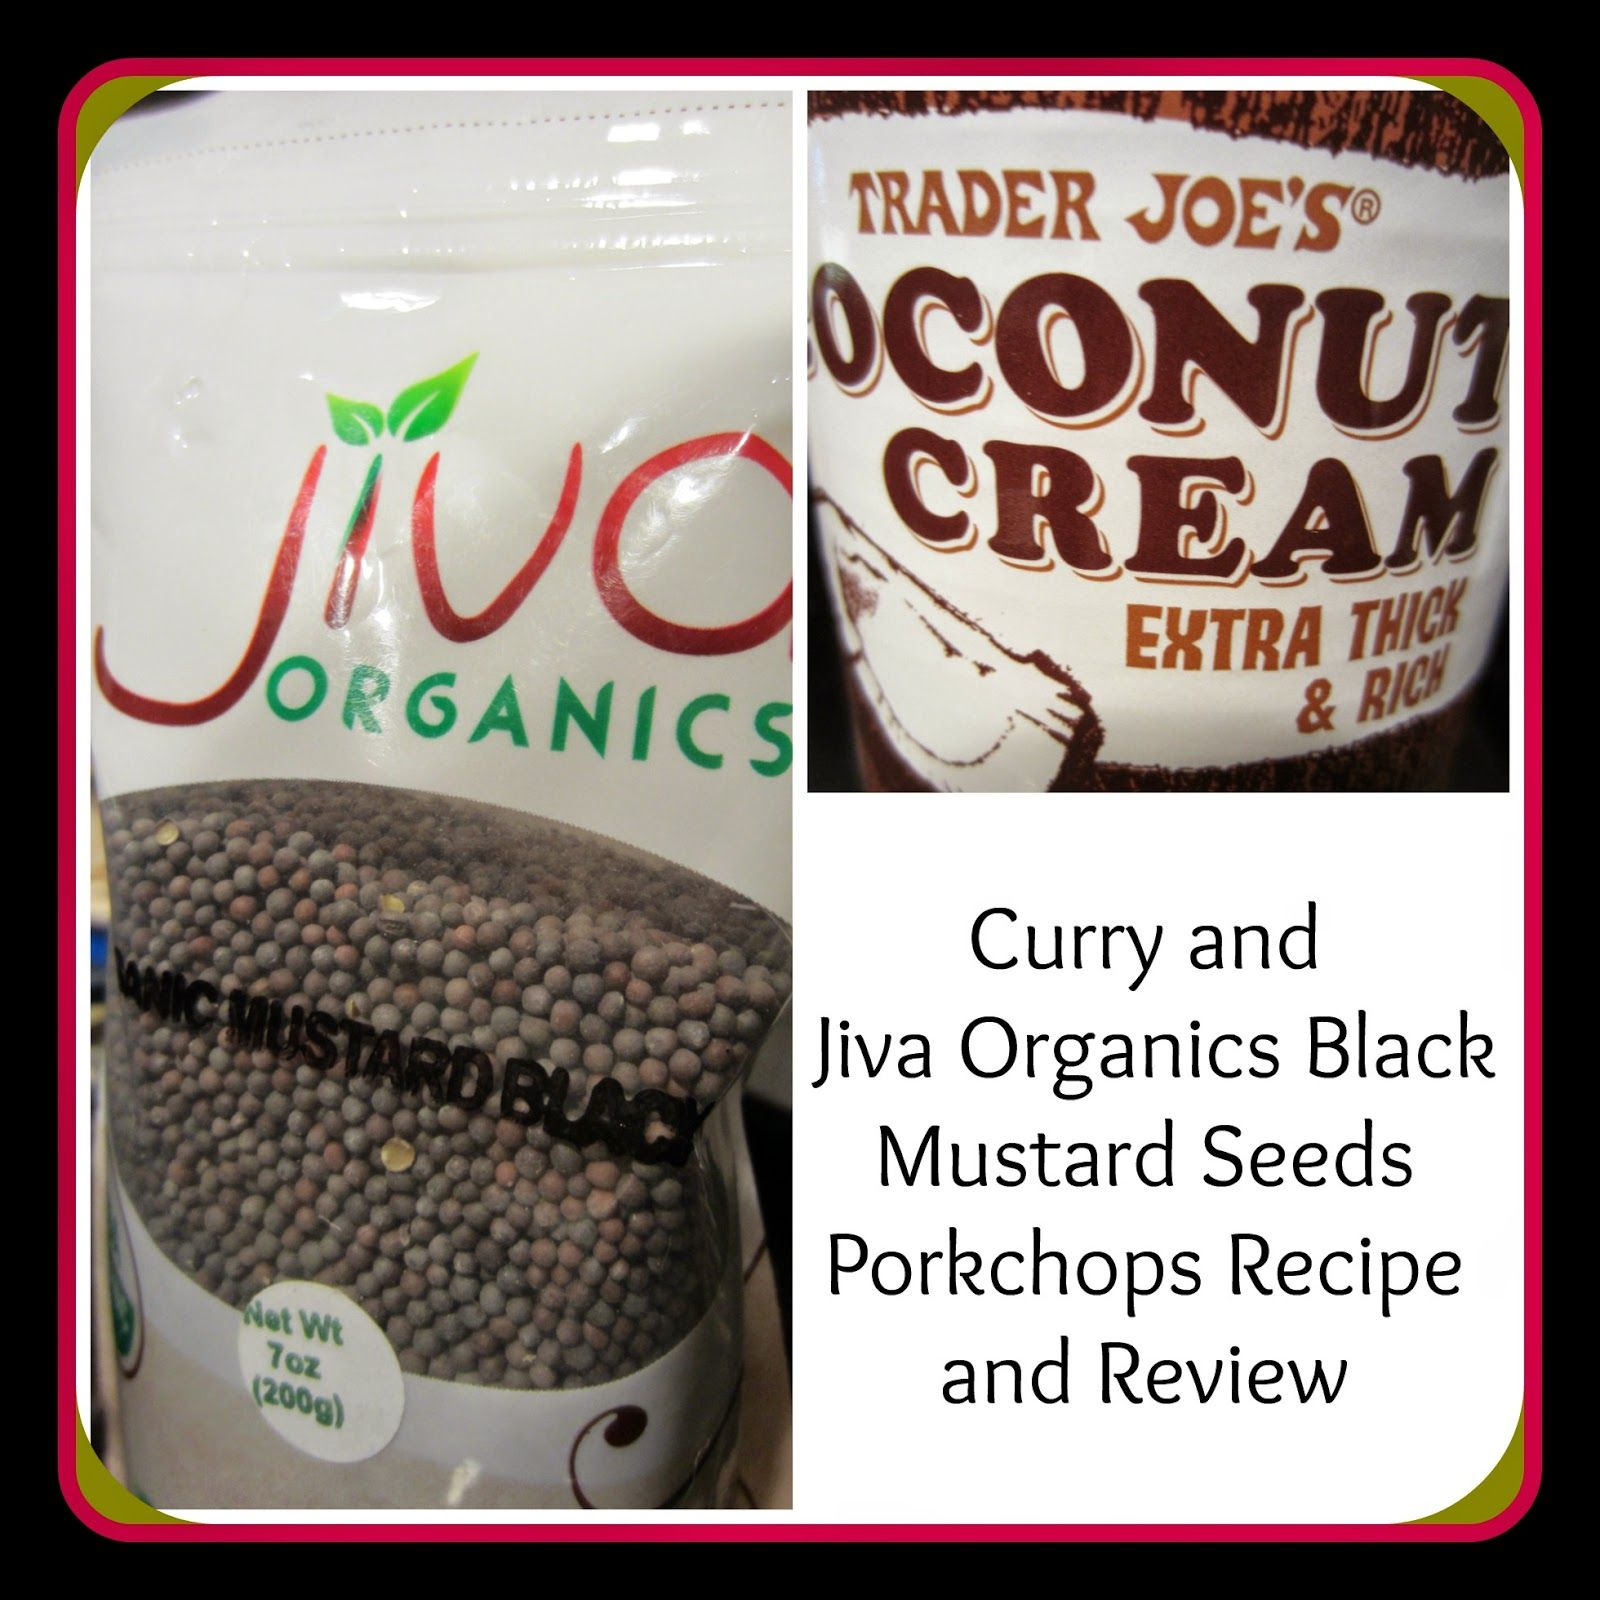 Itzybellababy: Curry and Jiva Organics Black Mustard Seeds Porkchops Recipe and Review